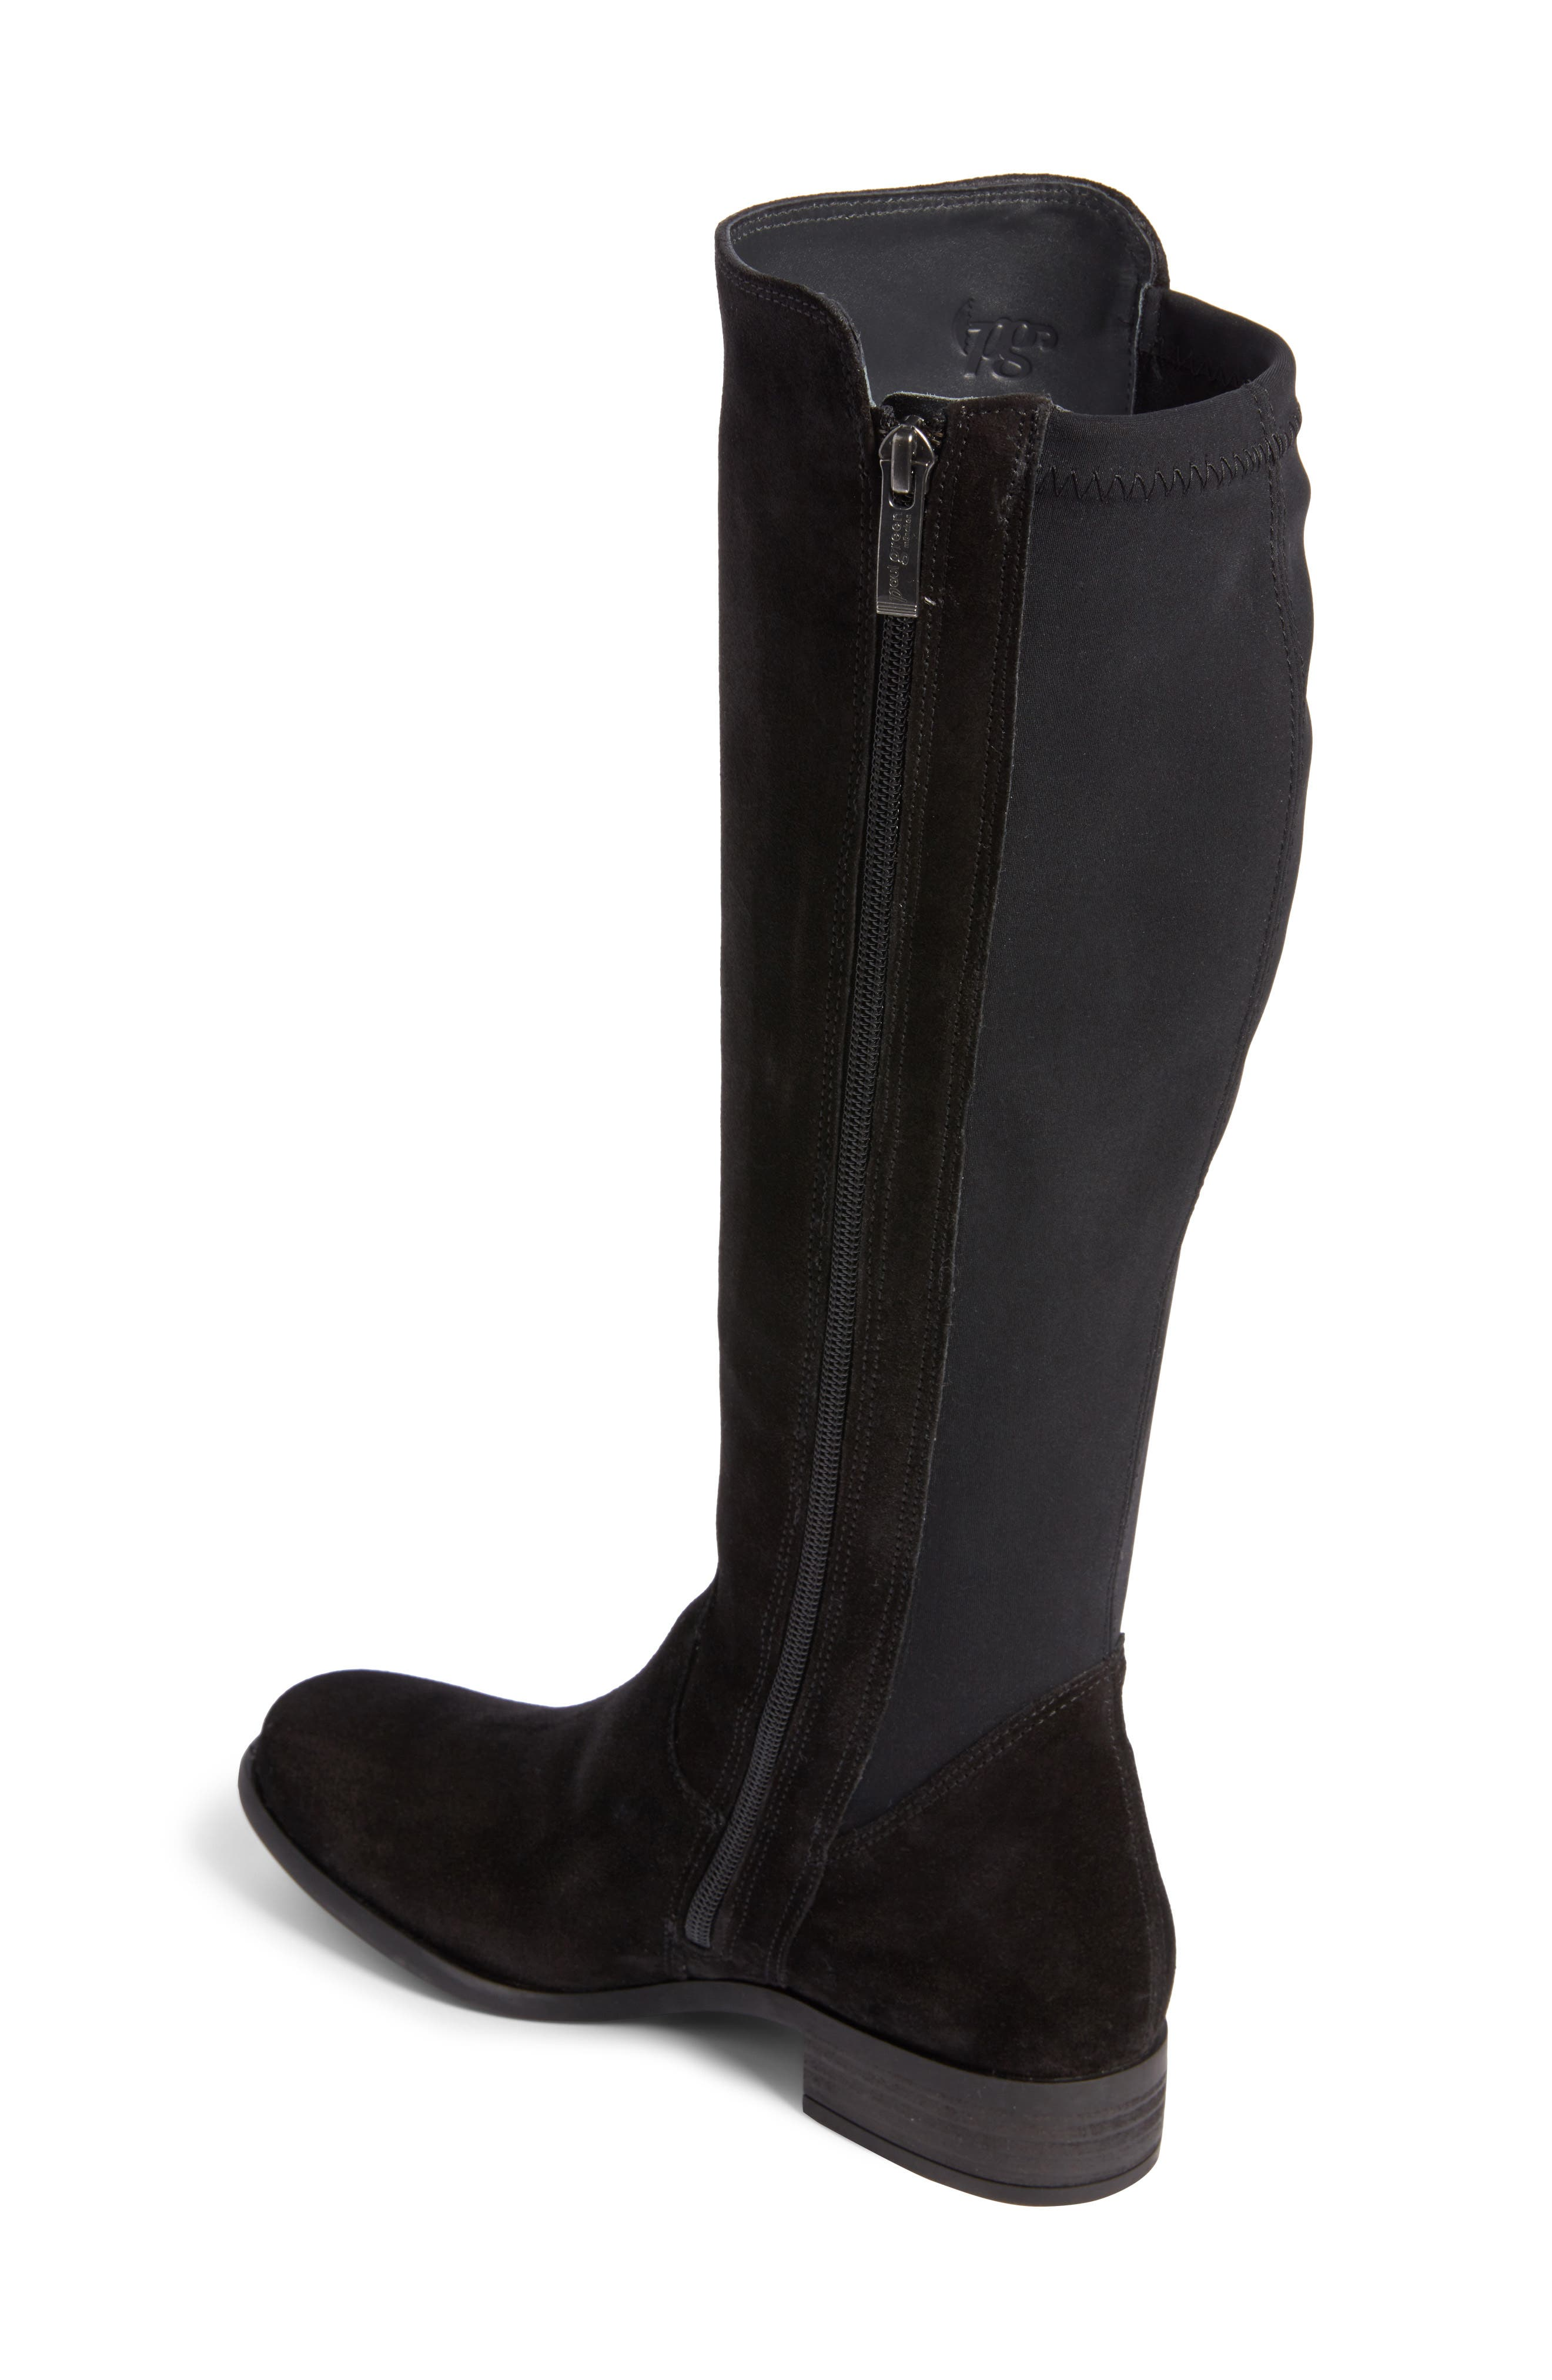 Nola Tall Water Resistant Boot,                             Alternate thumbnail 2, color,                             009